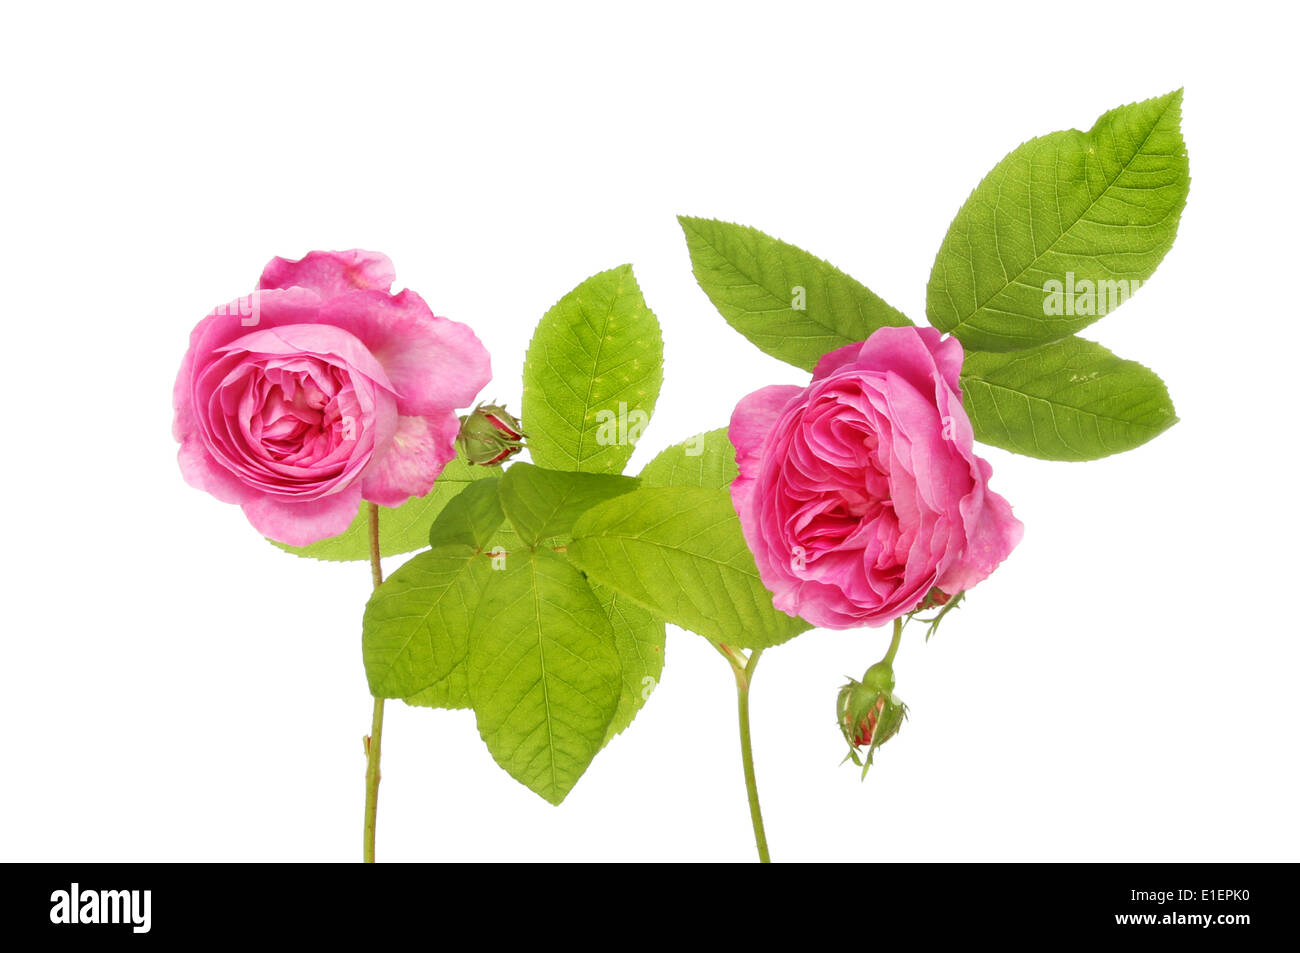 Two magenta rose flowers and foliage isolated against white - Stock Image